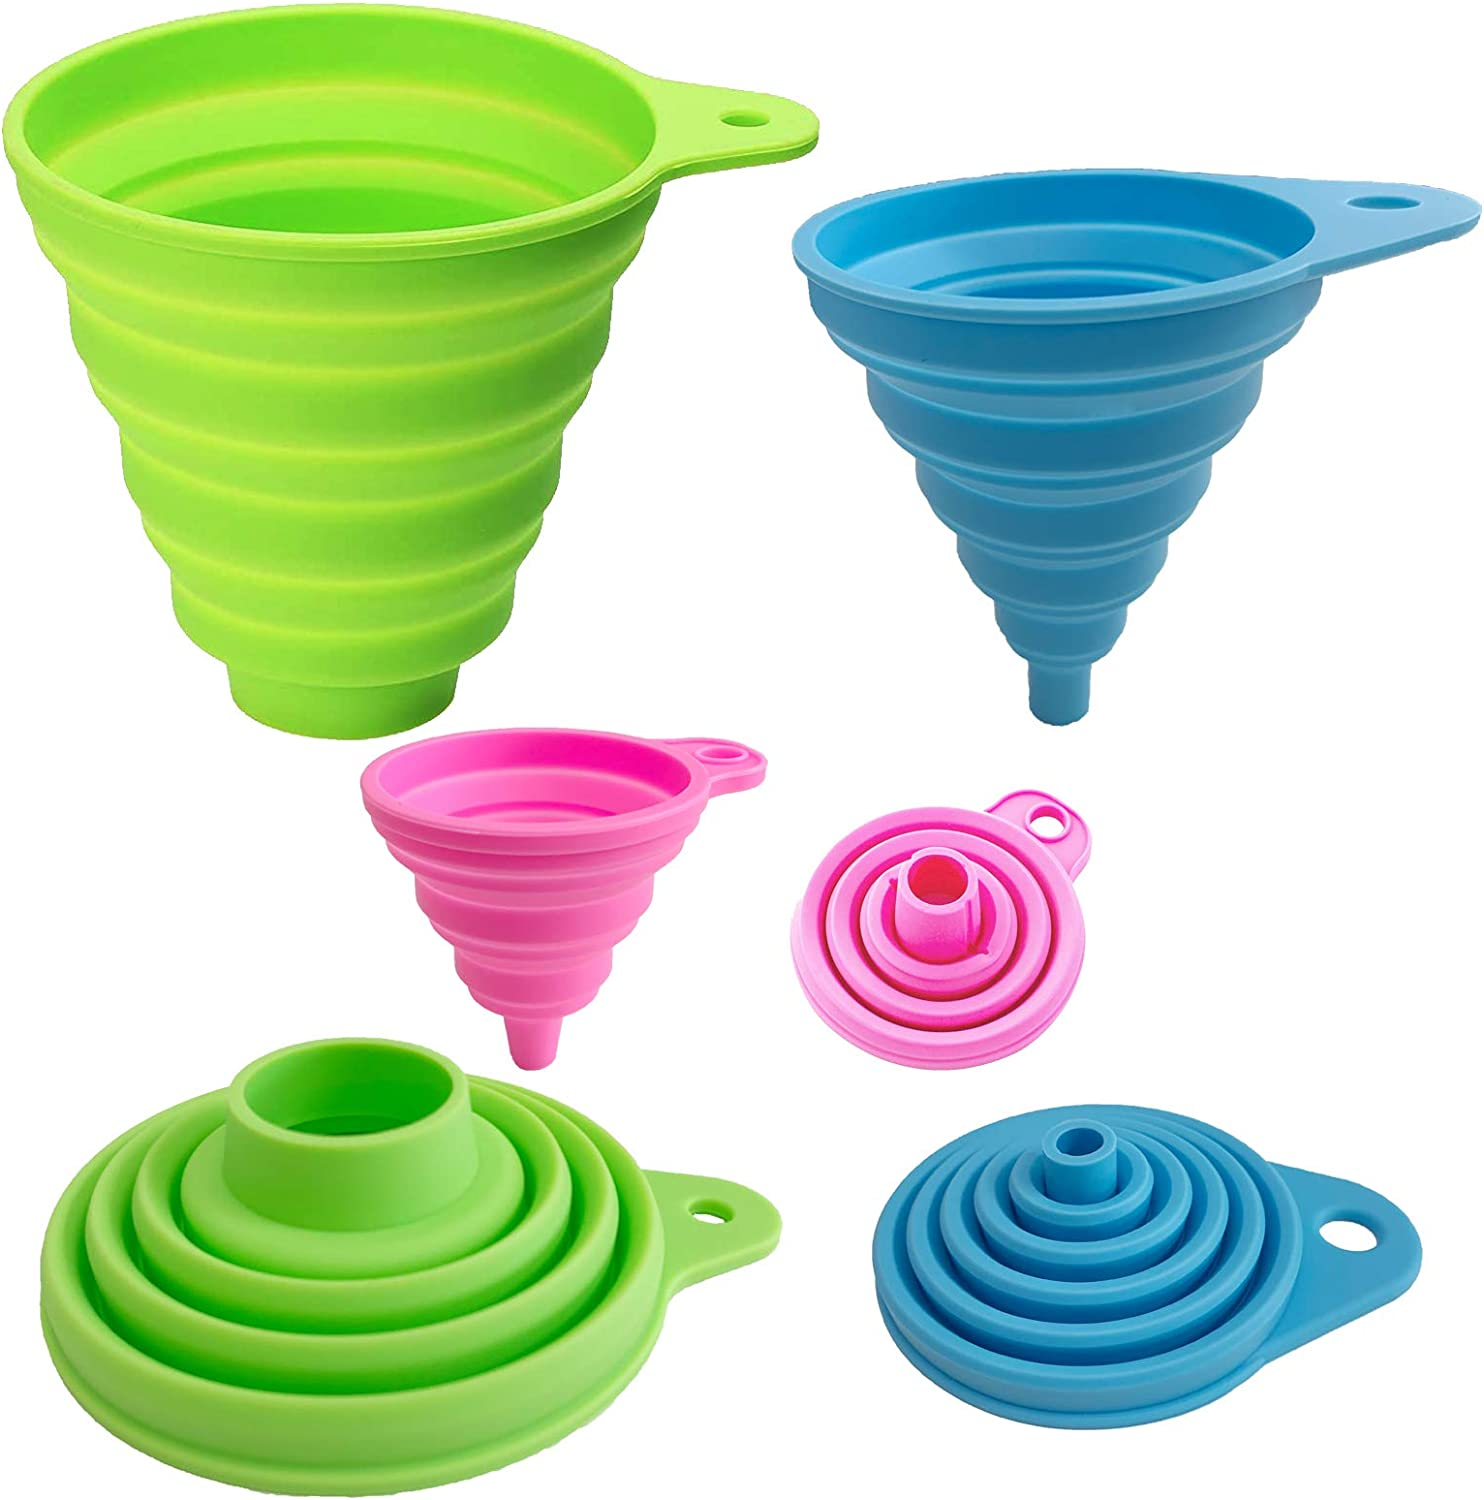 Kitchen Funnel, Silicone Collapsible Funnels for Filling Bottles, Food Grade Foldable Kitchen Funnels for Water Oil Liquid Powder, Set of 3, Large Funnel for Wide Mouth Jar, Medium/Small Funnel Set